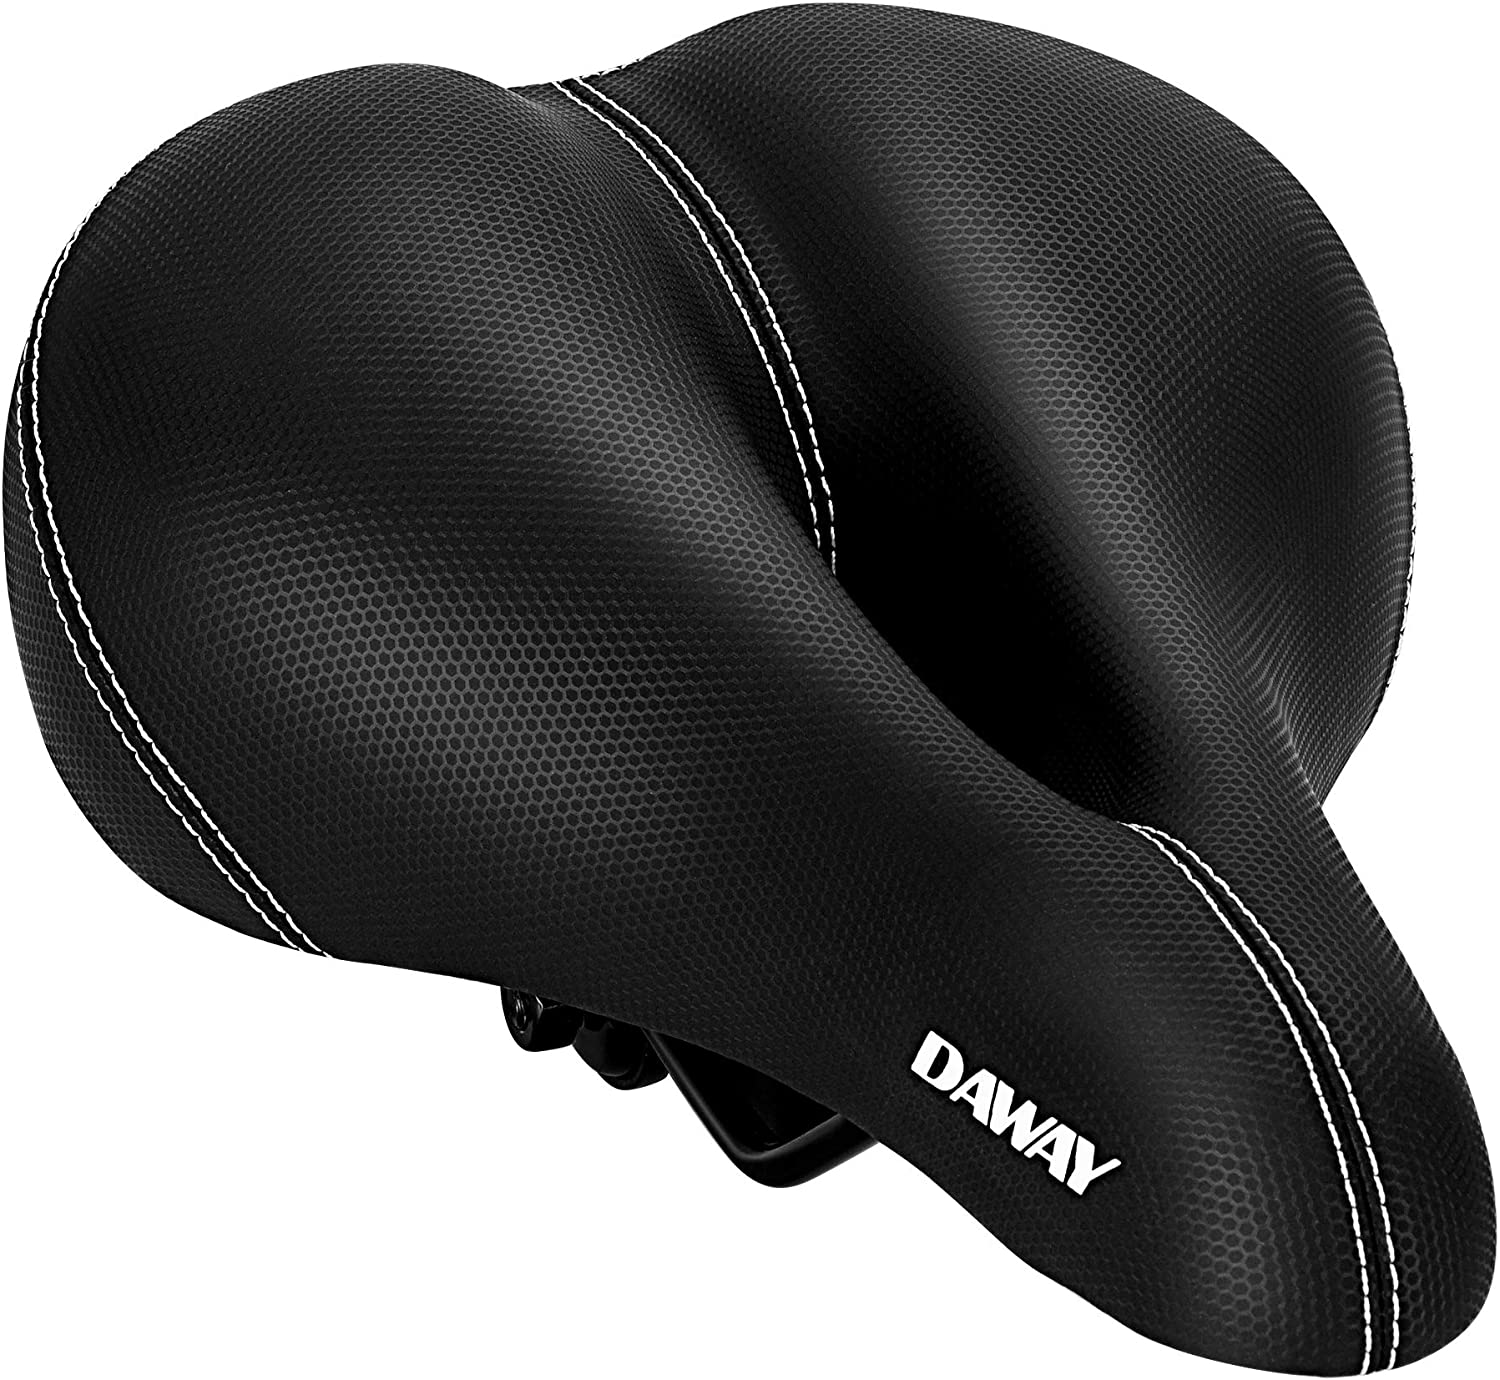 DAWAY Comfortable Men Women Bike Seat - C99 Memory Foam Padded Leather Wide Bicycle Saddle Cushion with Taillight, Waterproof, Dual Spring Suspension, Soft, Breathable, Universal Fit